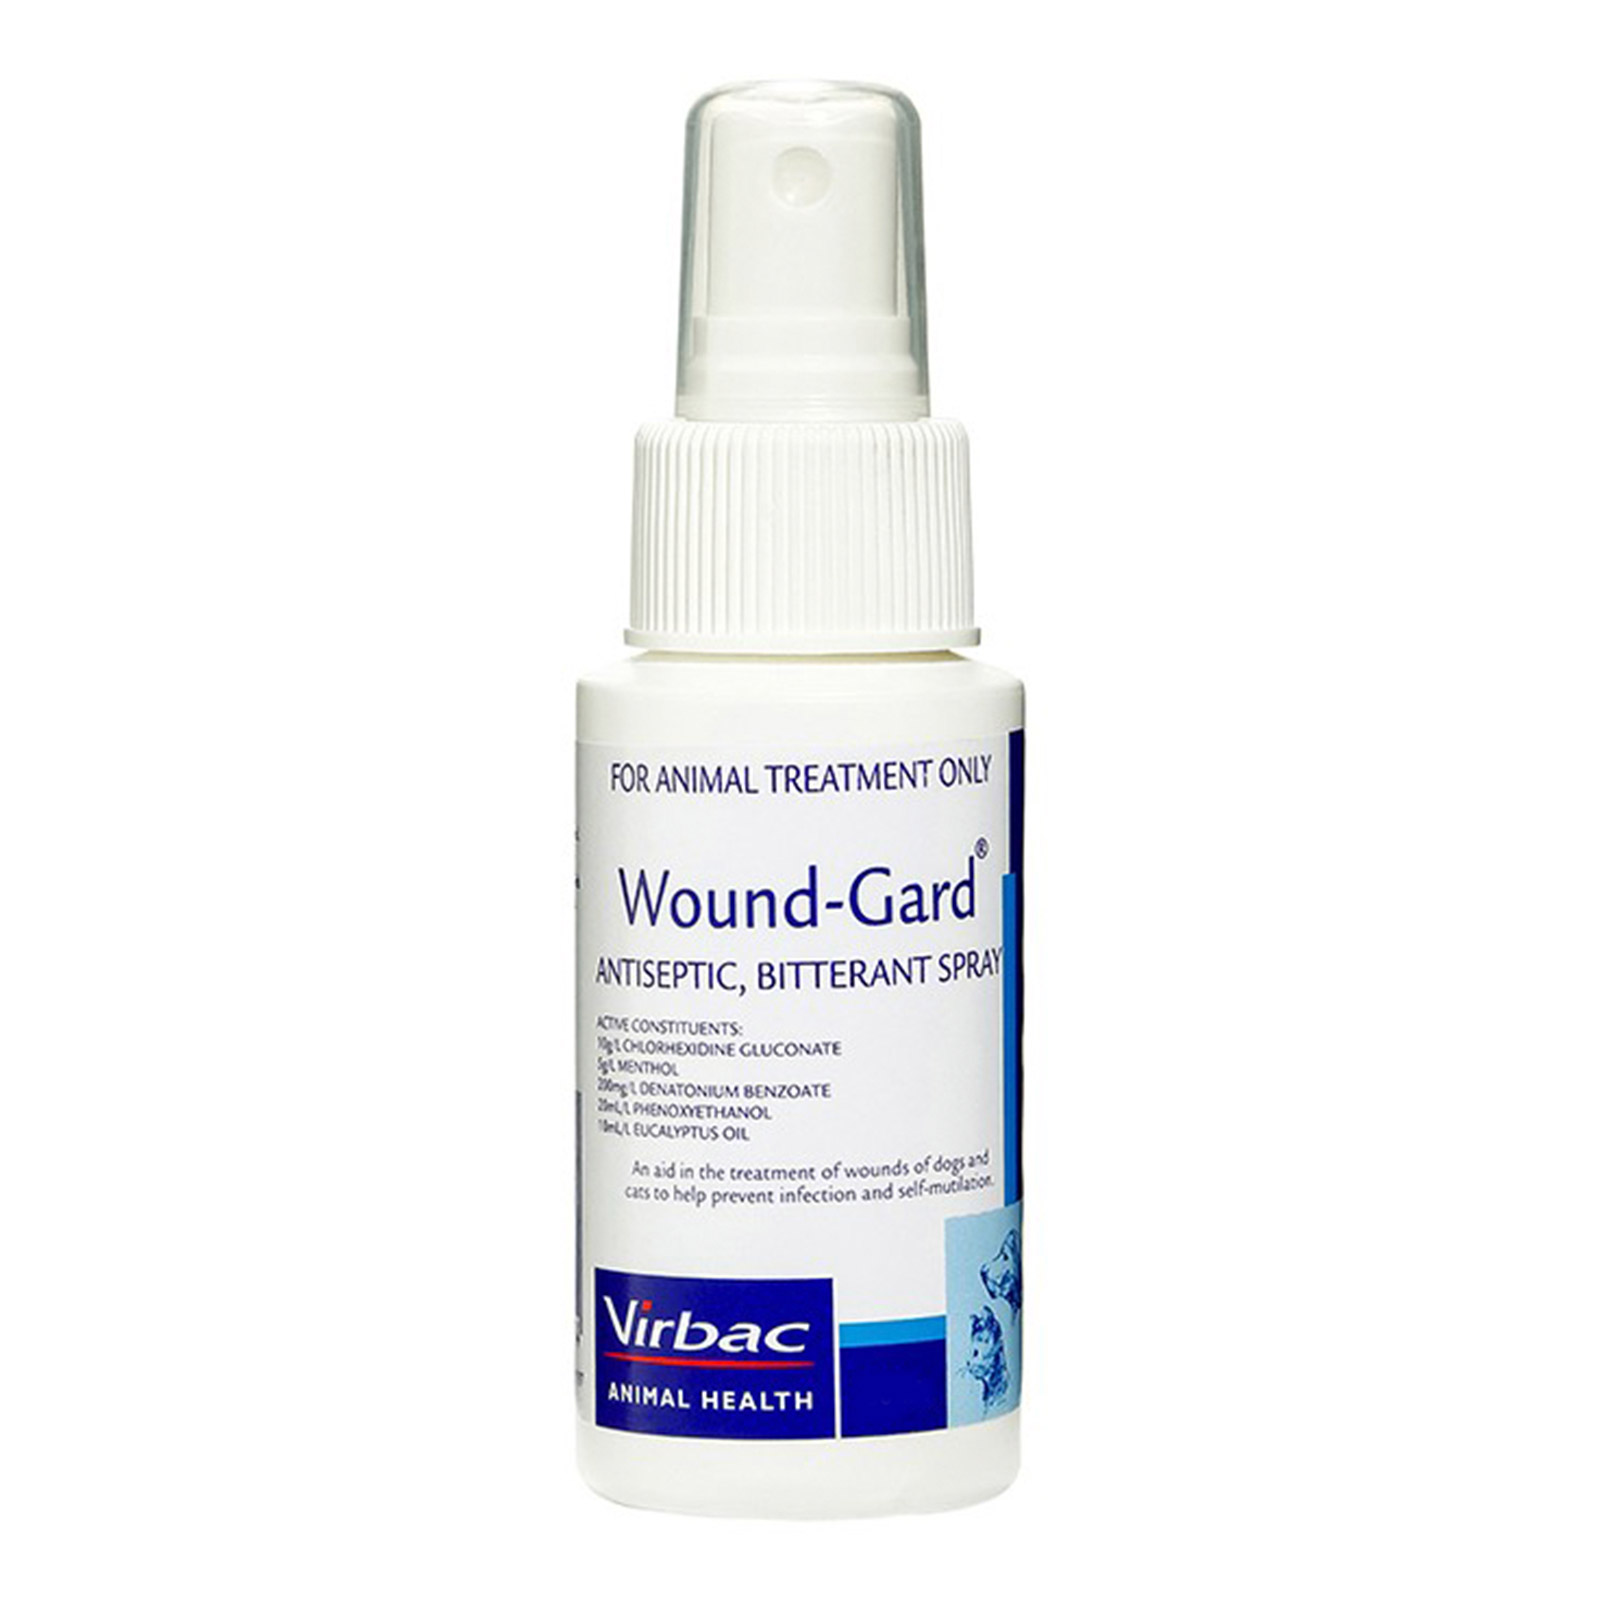 Virbac Wound-Gard Spray